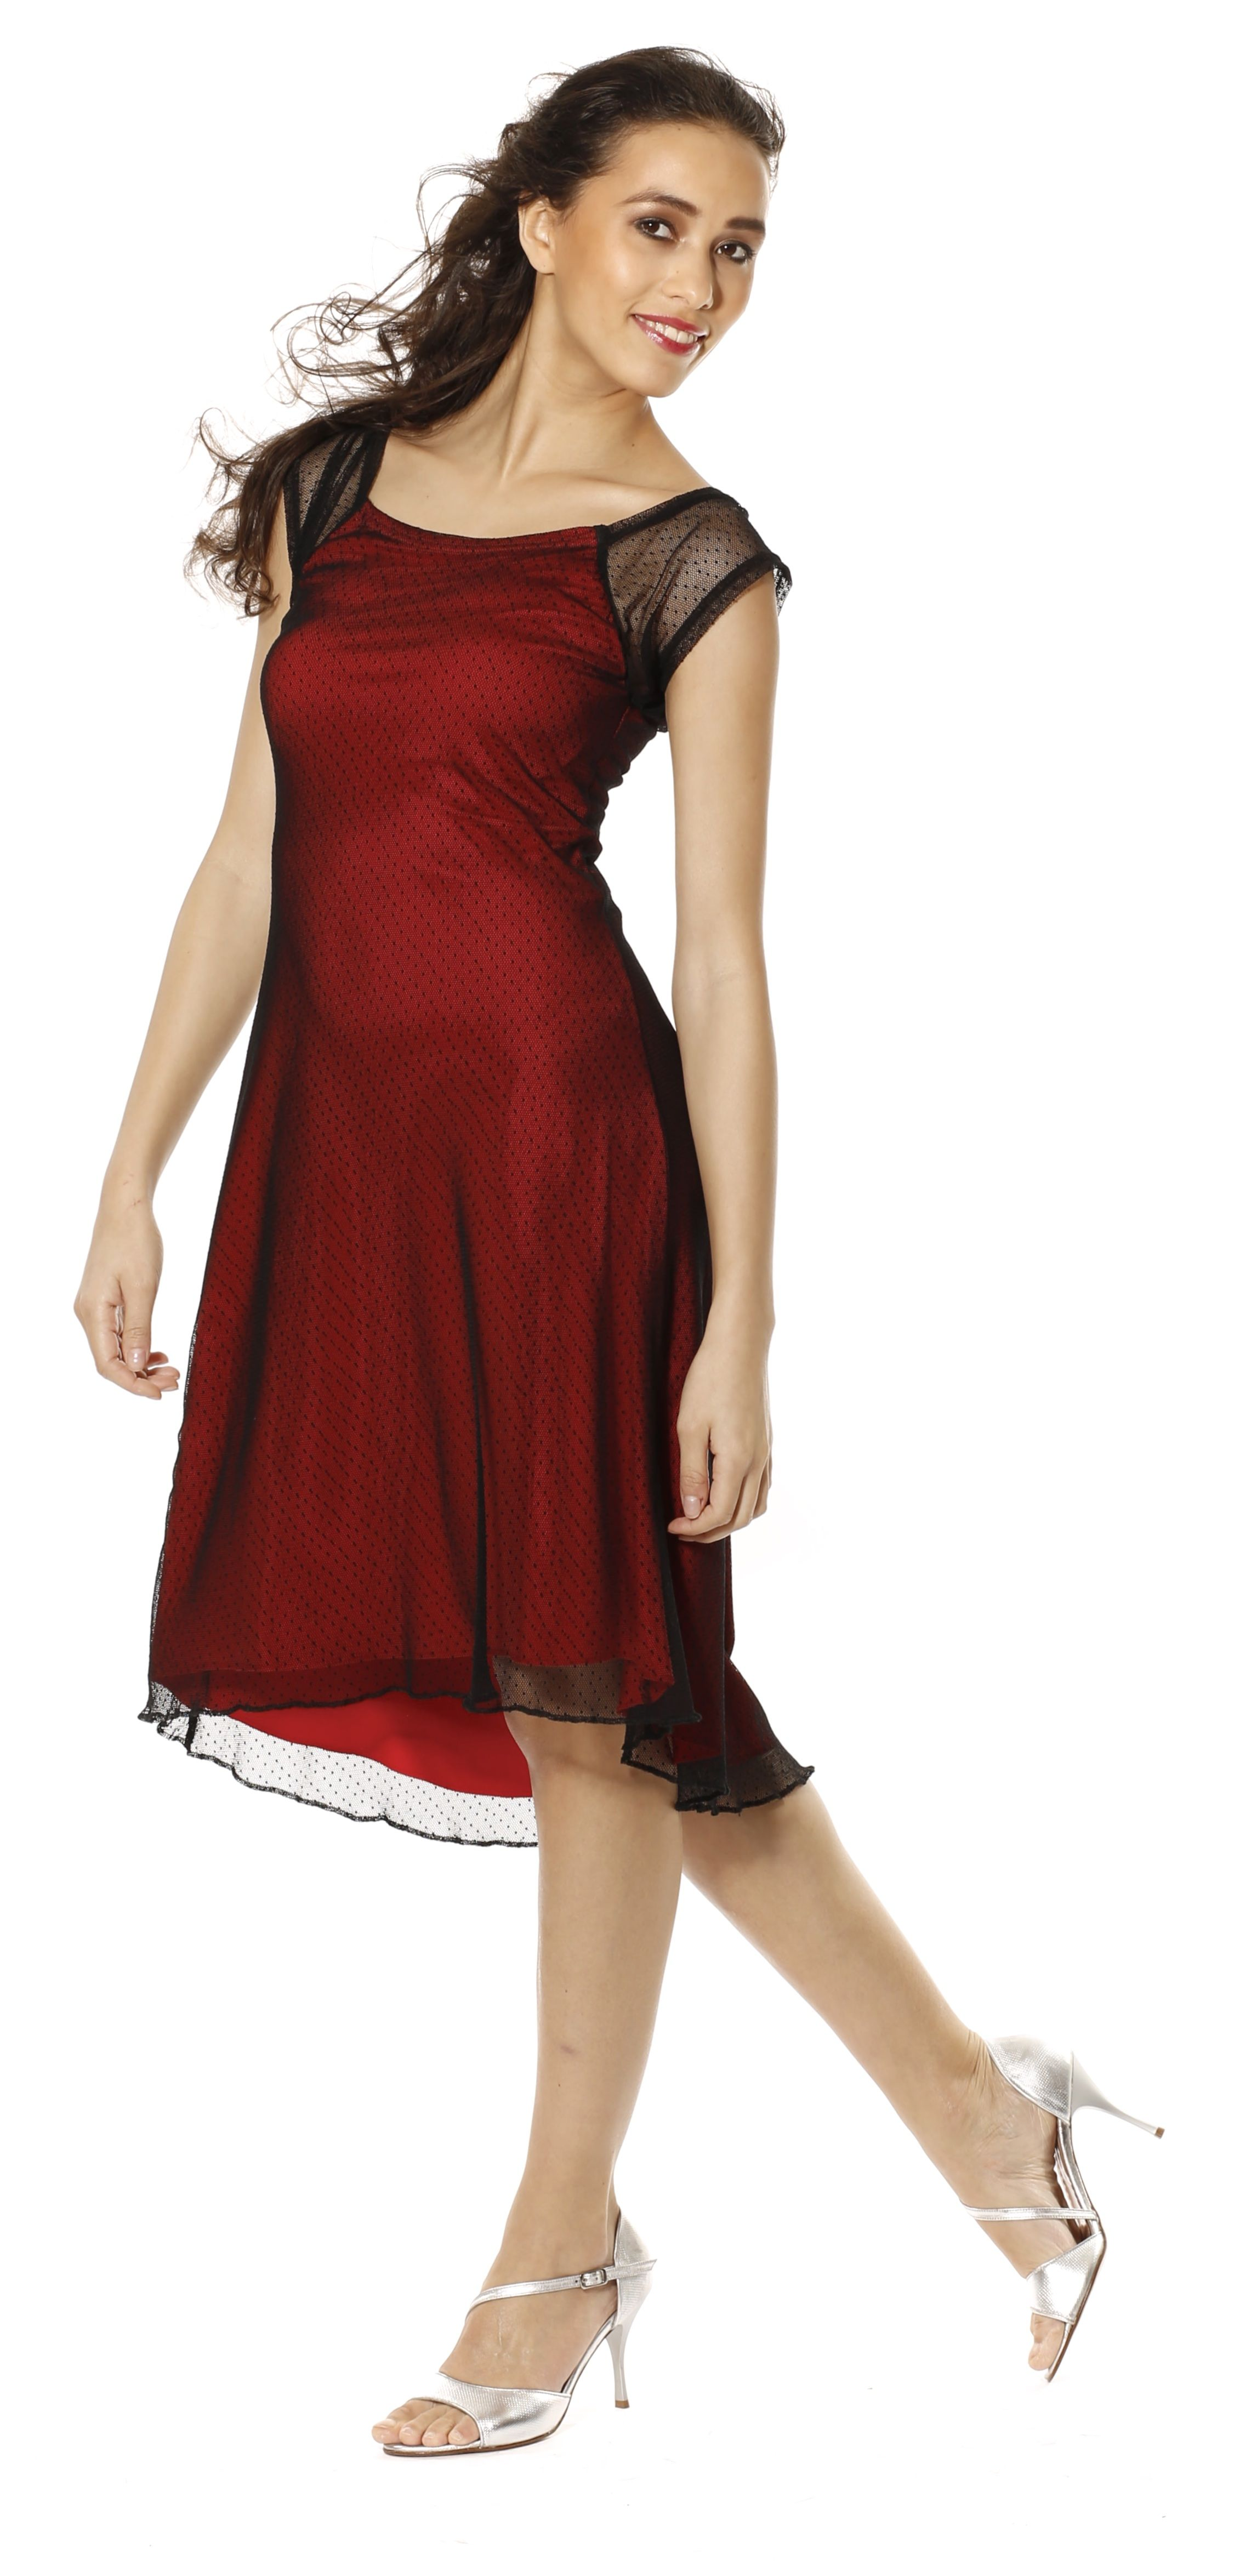 Salsa & Tango fashions from Berlin now available to shop ...